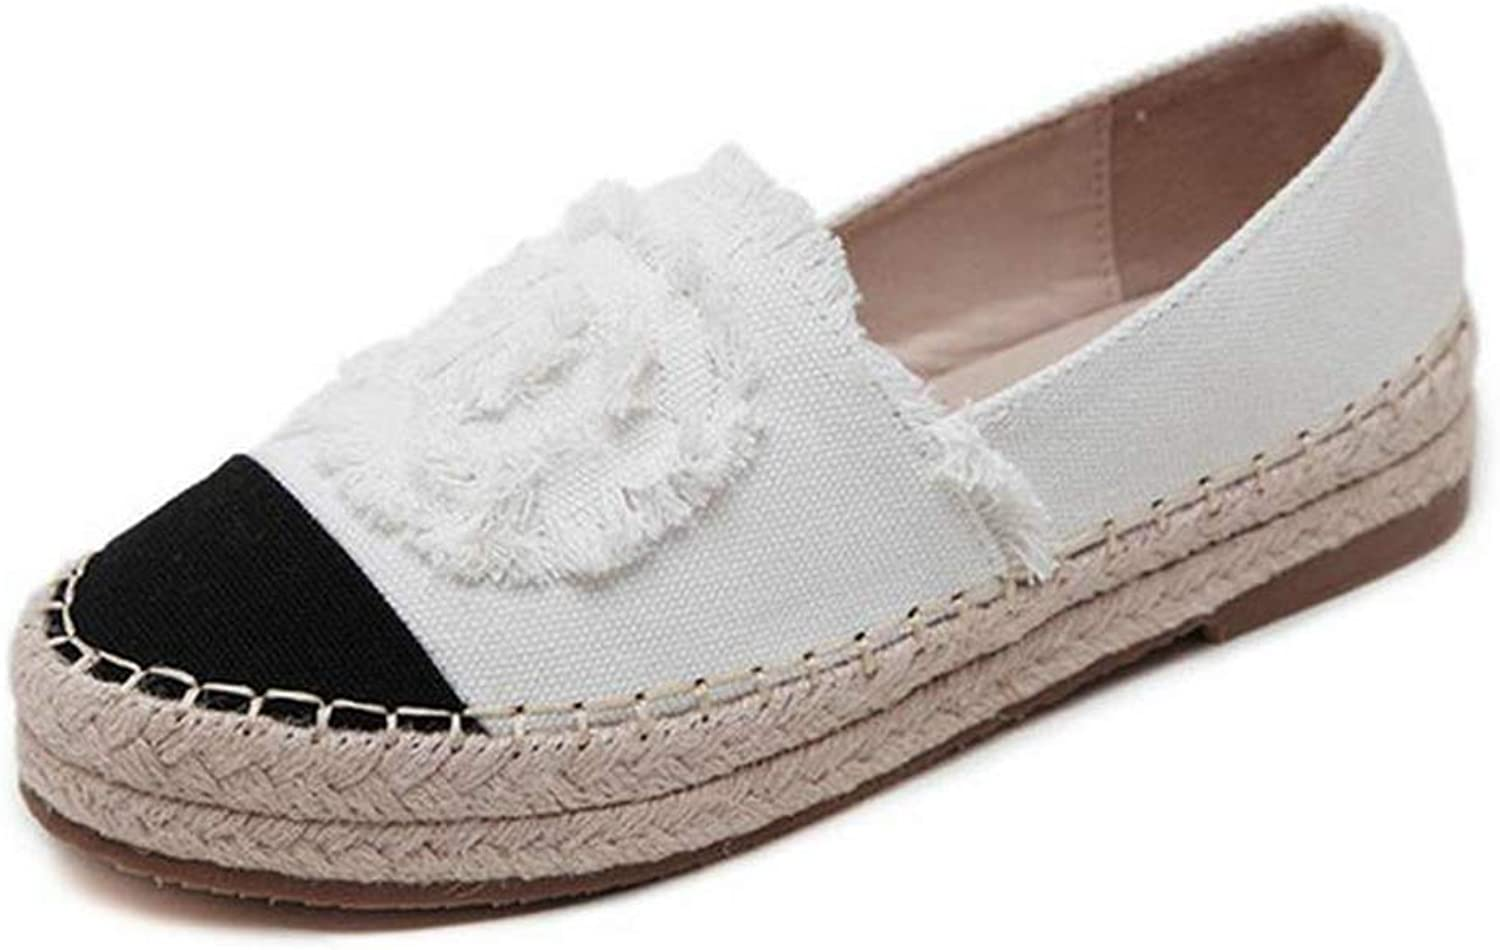 T-JULY Fashion Comfortable Seasons Women Espadrilles shoes Flats Summer shoes Slides Ladies Woman Casual Loafers High